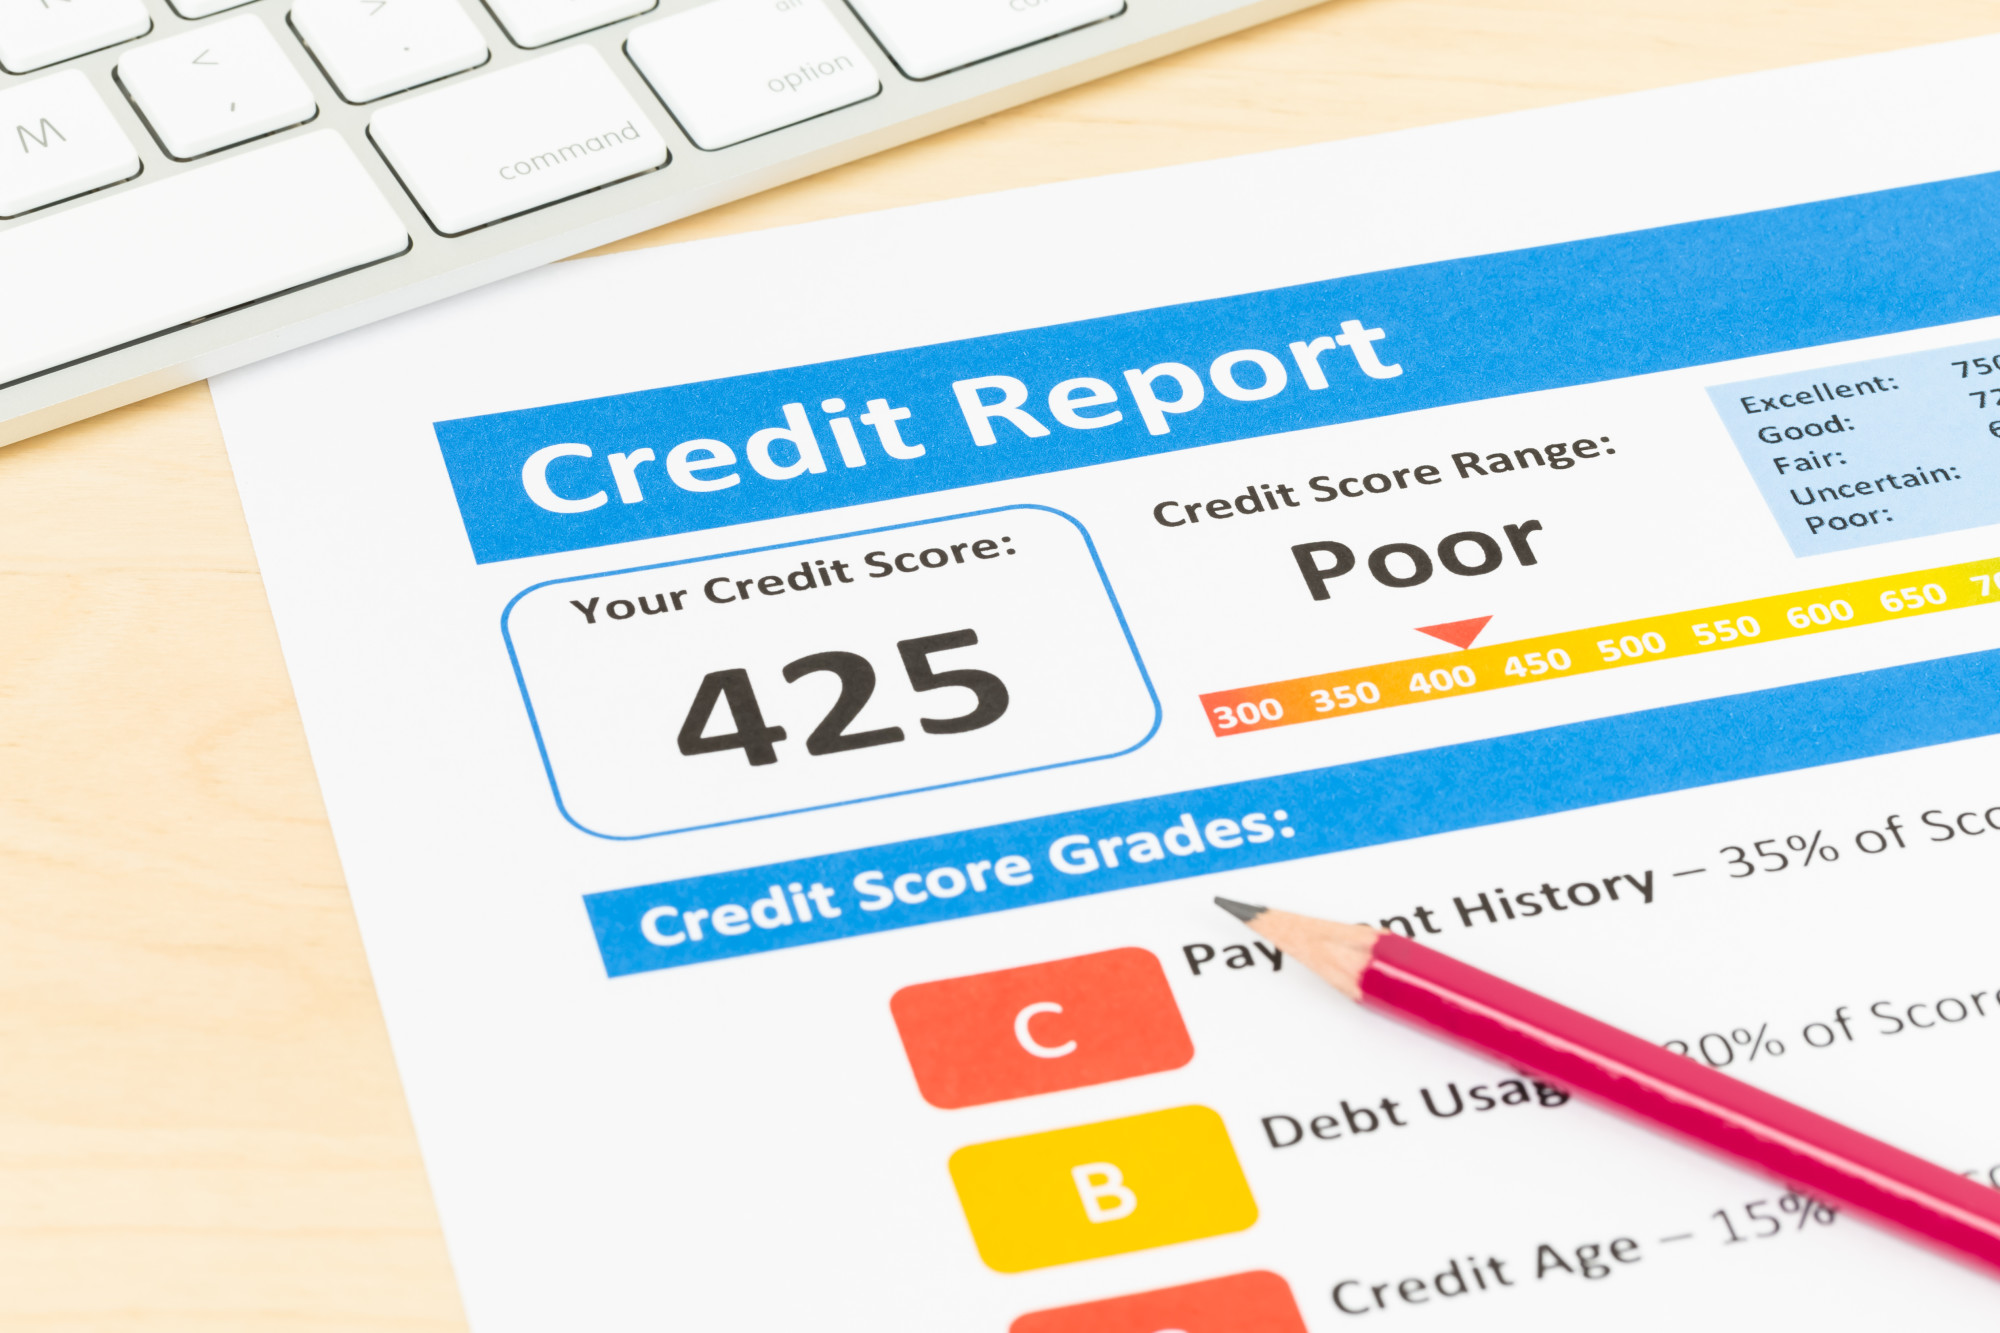 550 Credit Score Credit Card >> 7 Must Have Tips On How To Repair Your Credit Score Yourself